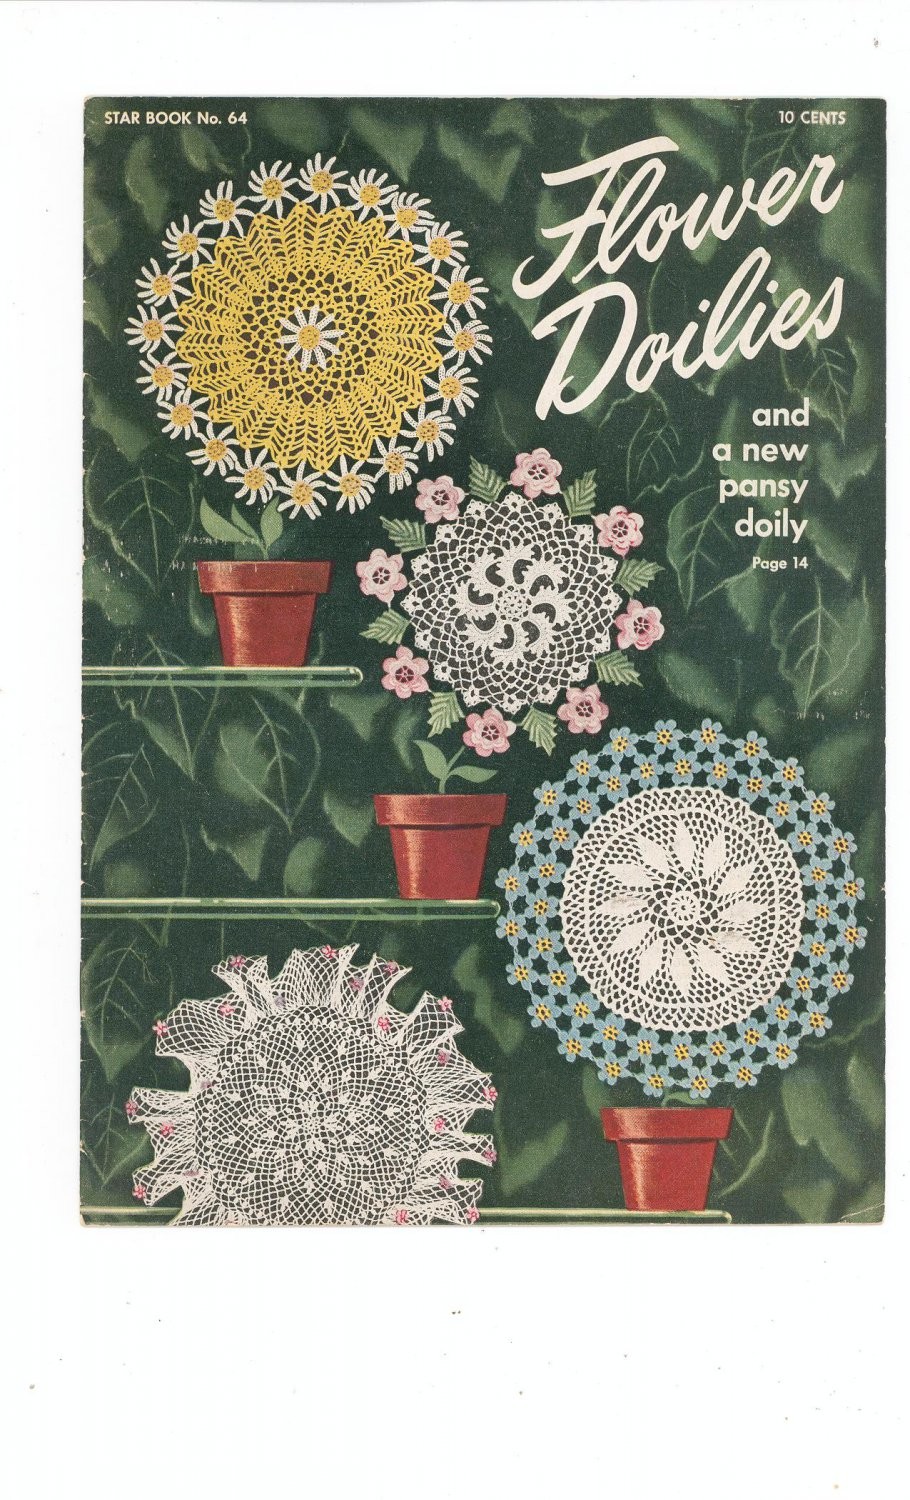 Flower Doilies Star Book Number 64 Vintage 1949 New Pansy Doily